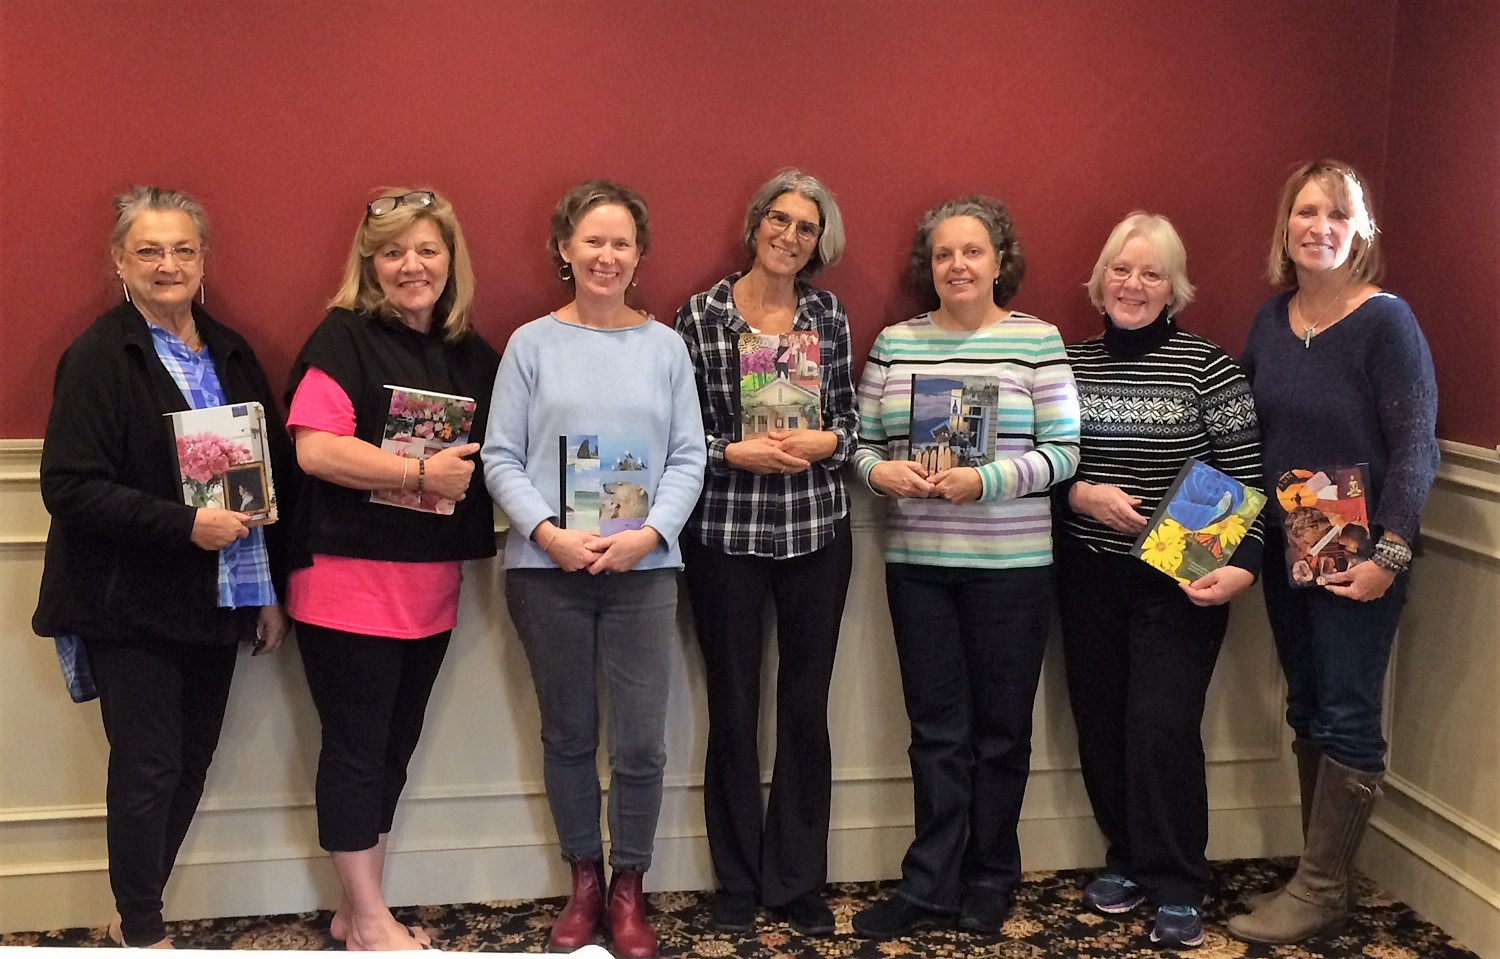 Capturing thoughts with Decoupage Journals at the Fall 2018 Retreat at Stonehedge Hotel & Spa in Tyngsboro, MA!